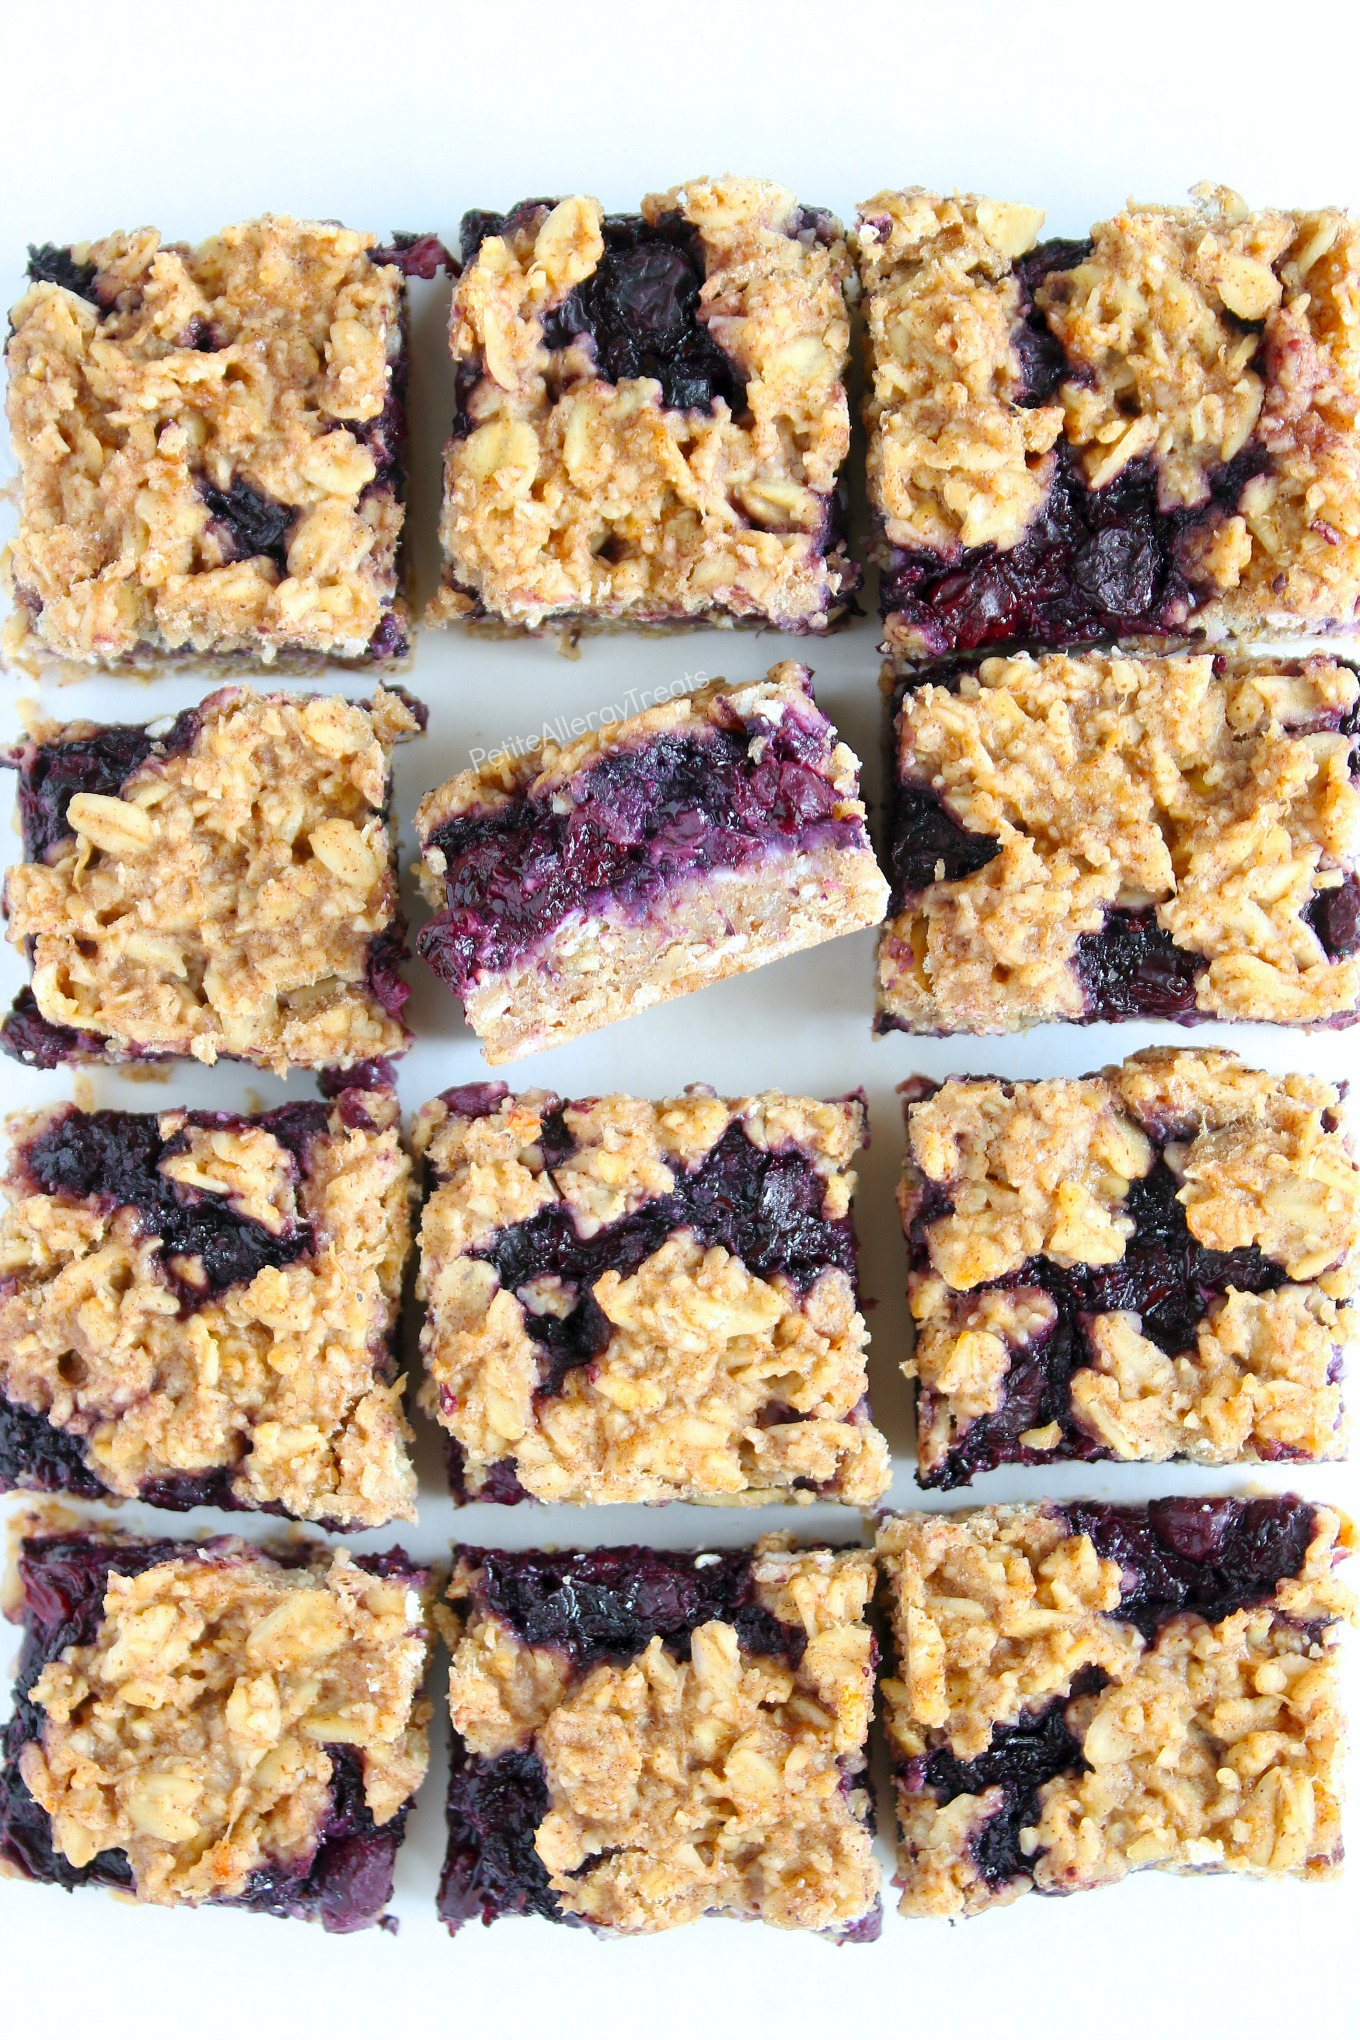 Easy Breakfast Blueberry Crumble Oat Bars Recipe (gluten free dairy free Vegan) Healthy refined sugar free flourless oat bars! Super easy dairy free quick breakfast. Food Allergy friendly.